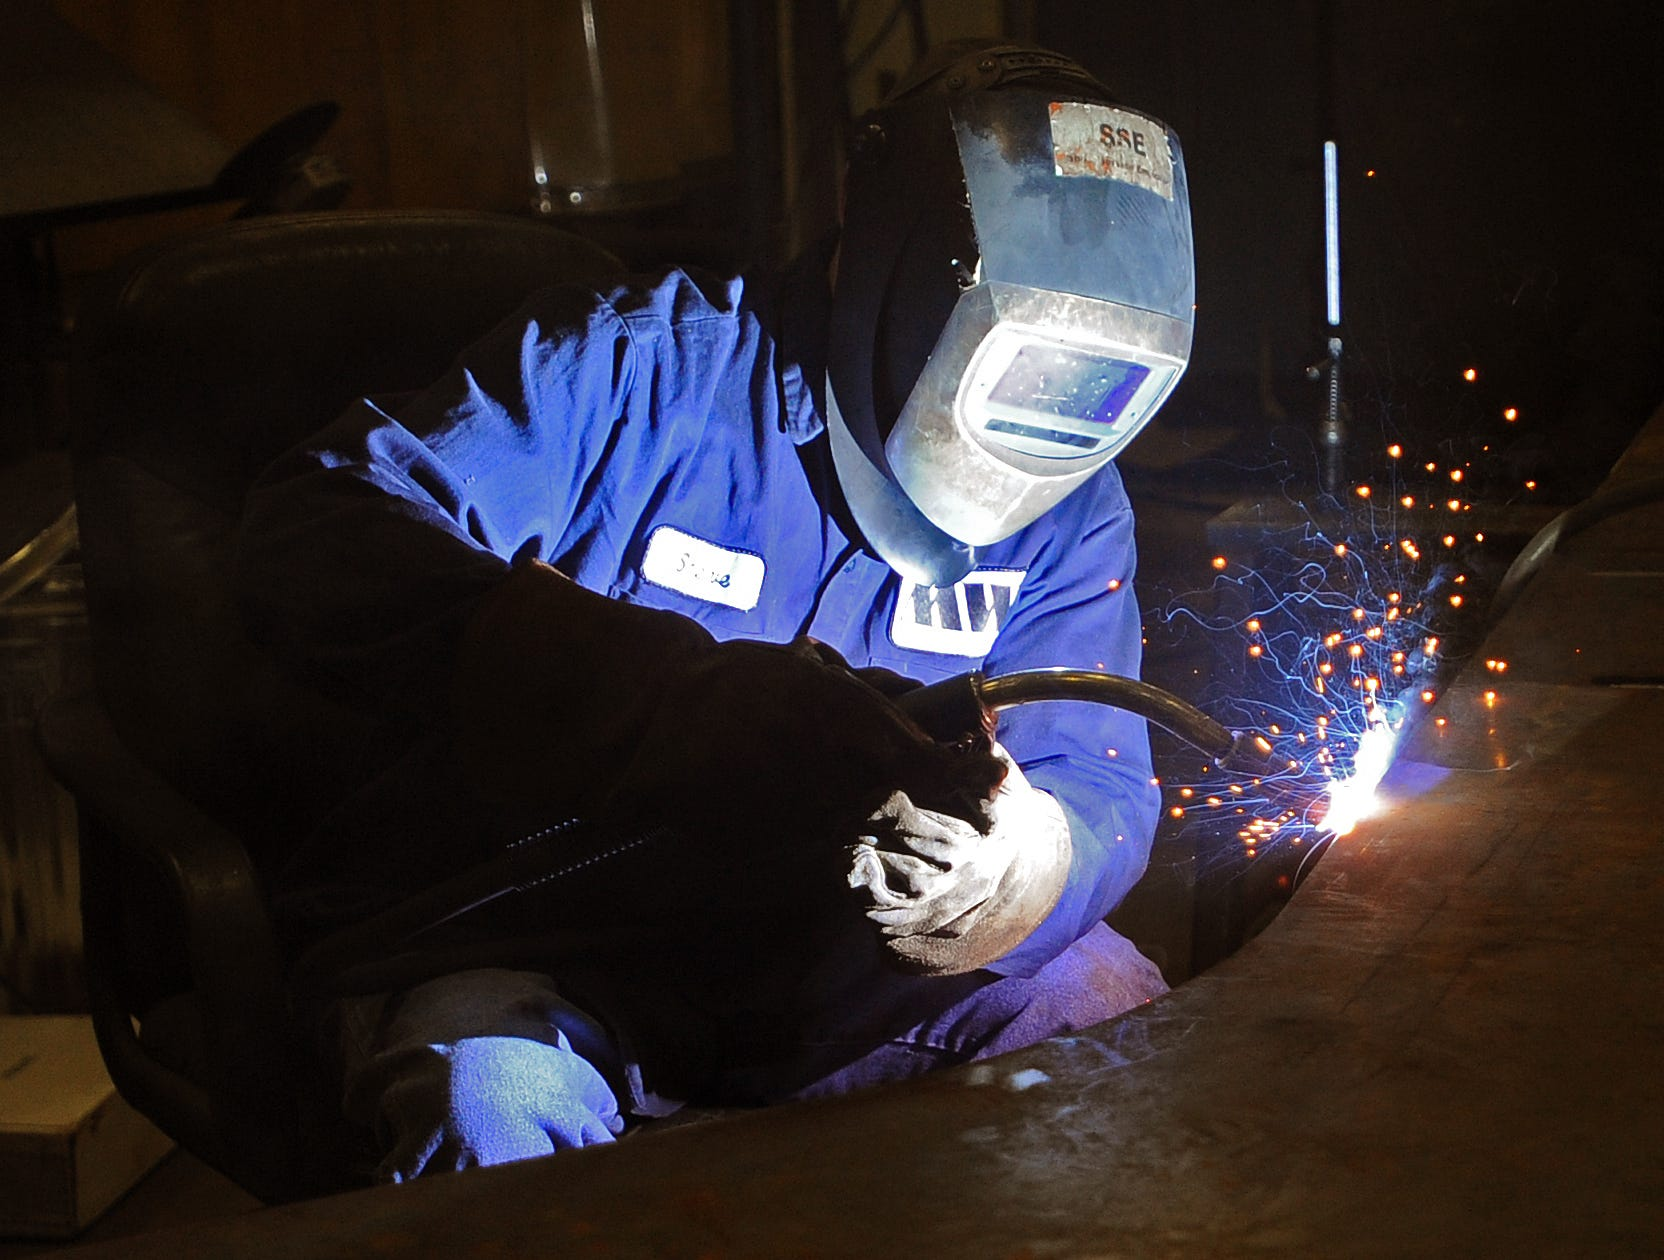 Getting into the field of welding